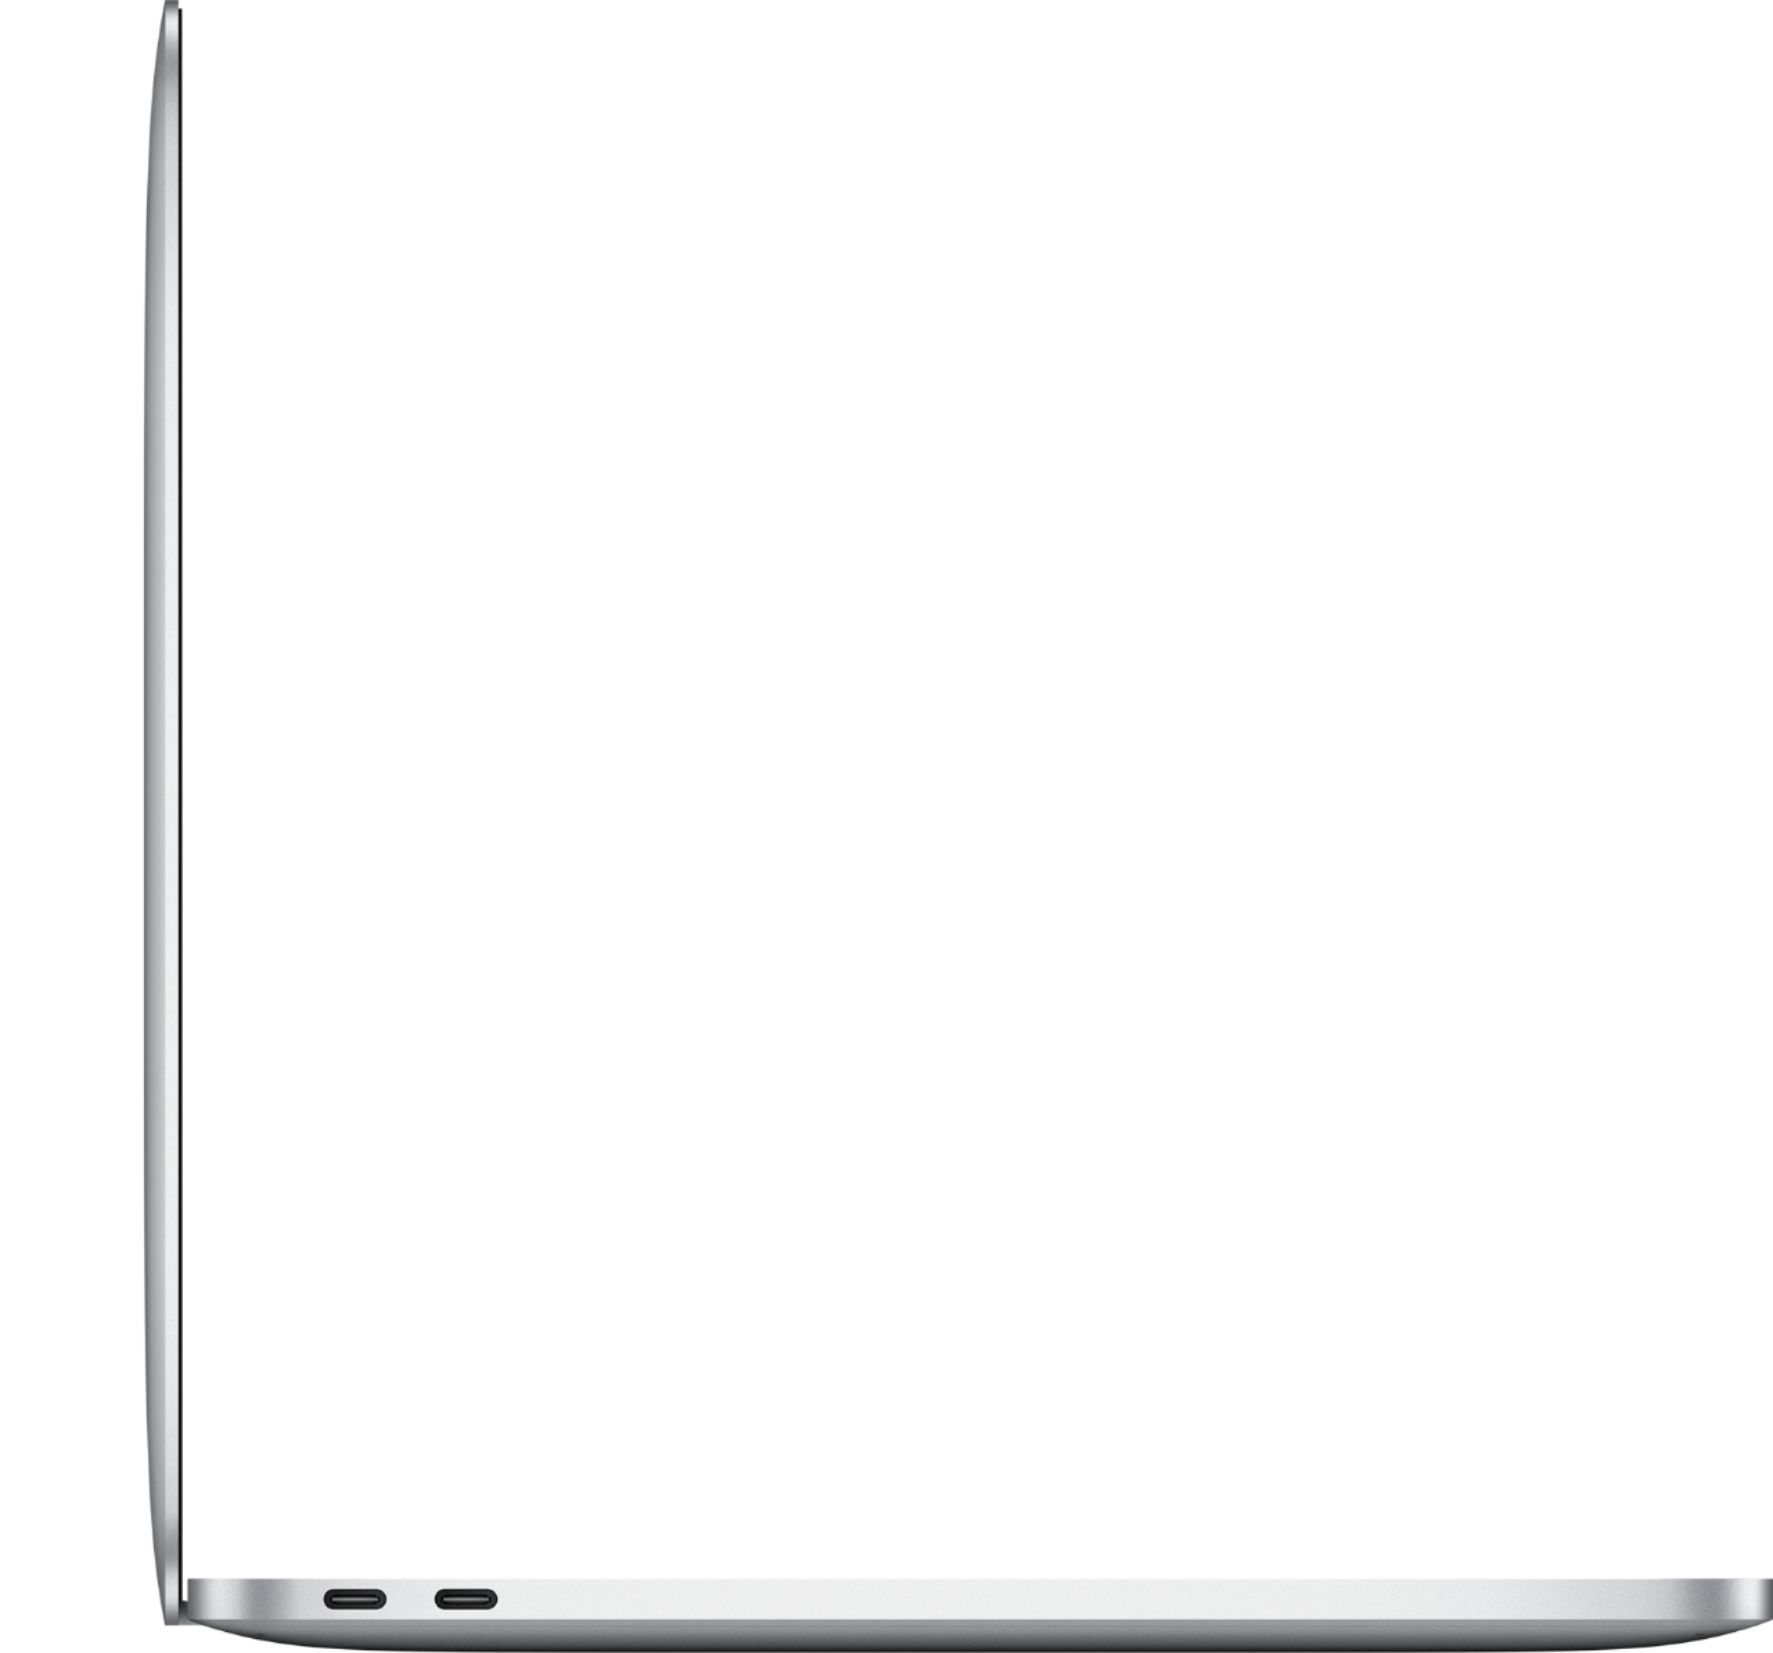 """Alt View Zoom 10. Apple - MacBook Pro 13.3"""" Laptop - Intel Core i7 - 8GB Memory - 1TB Solid State Drive - Silver."""